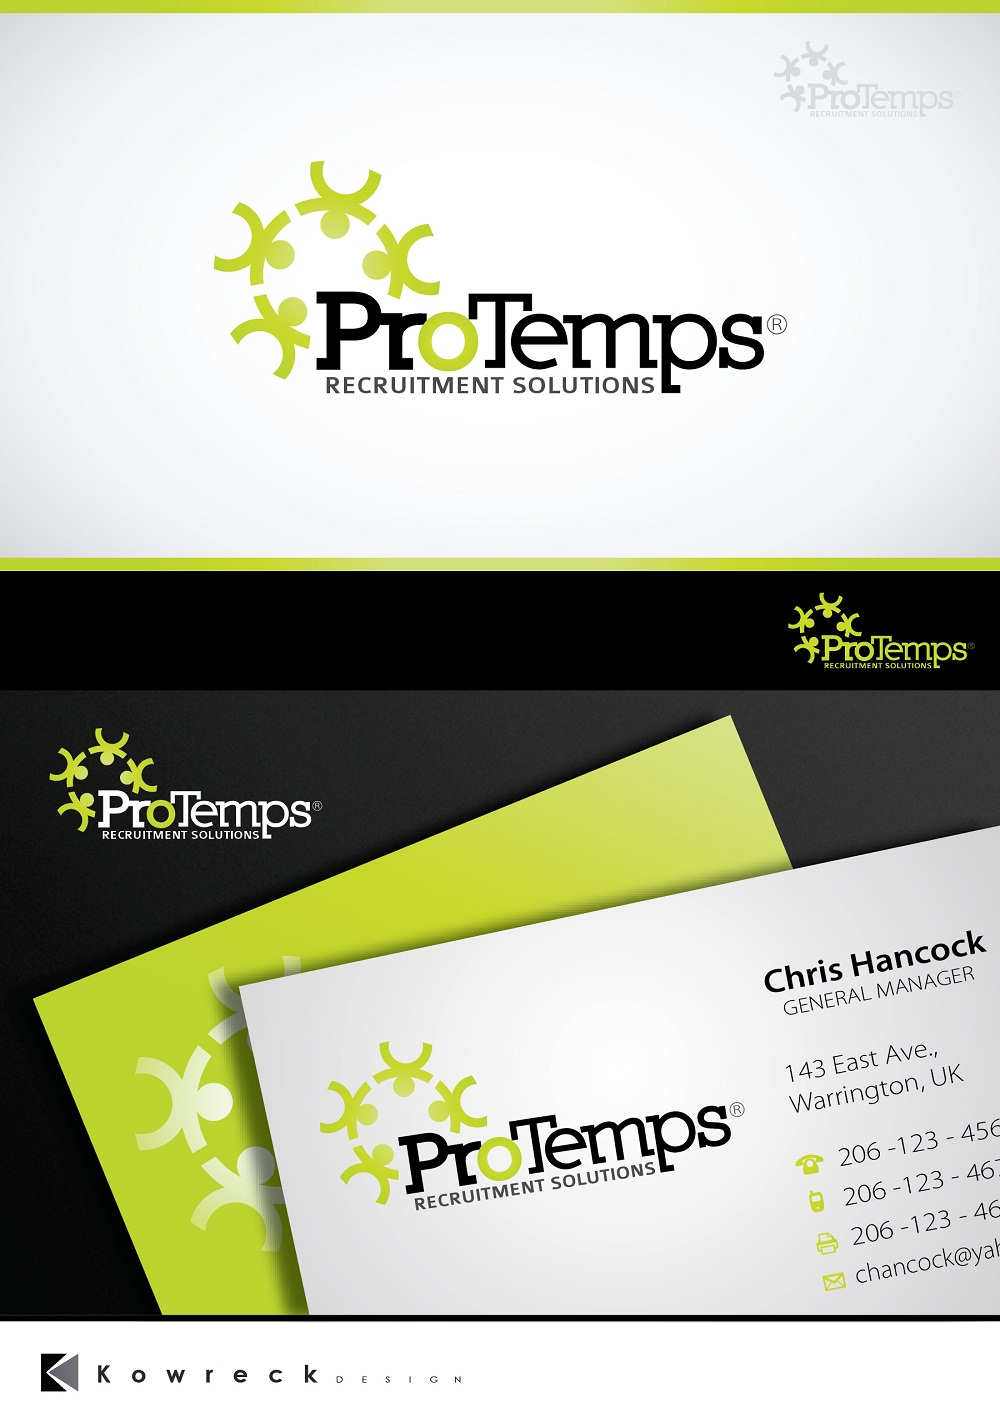 Logo Design by kowreck - Entry No. 20 in the Logo Design Contest Logo Design for ProTemps Recruitment Solutions.